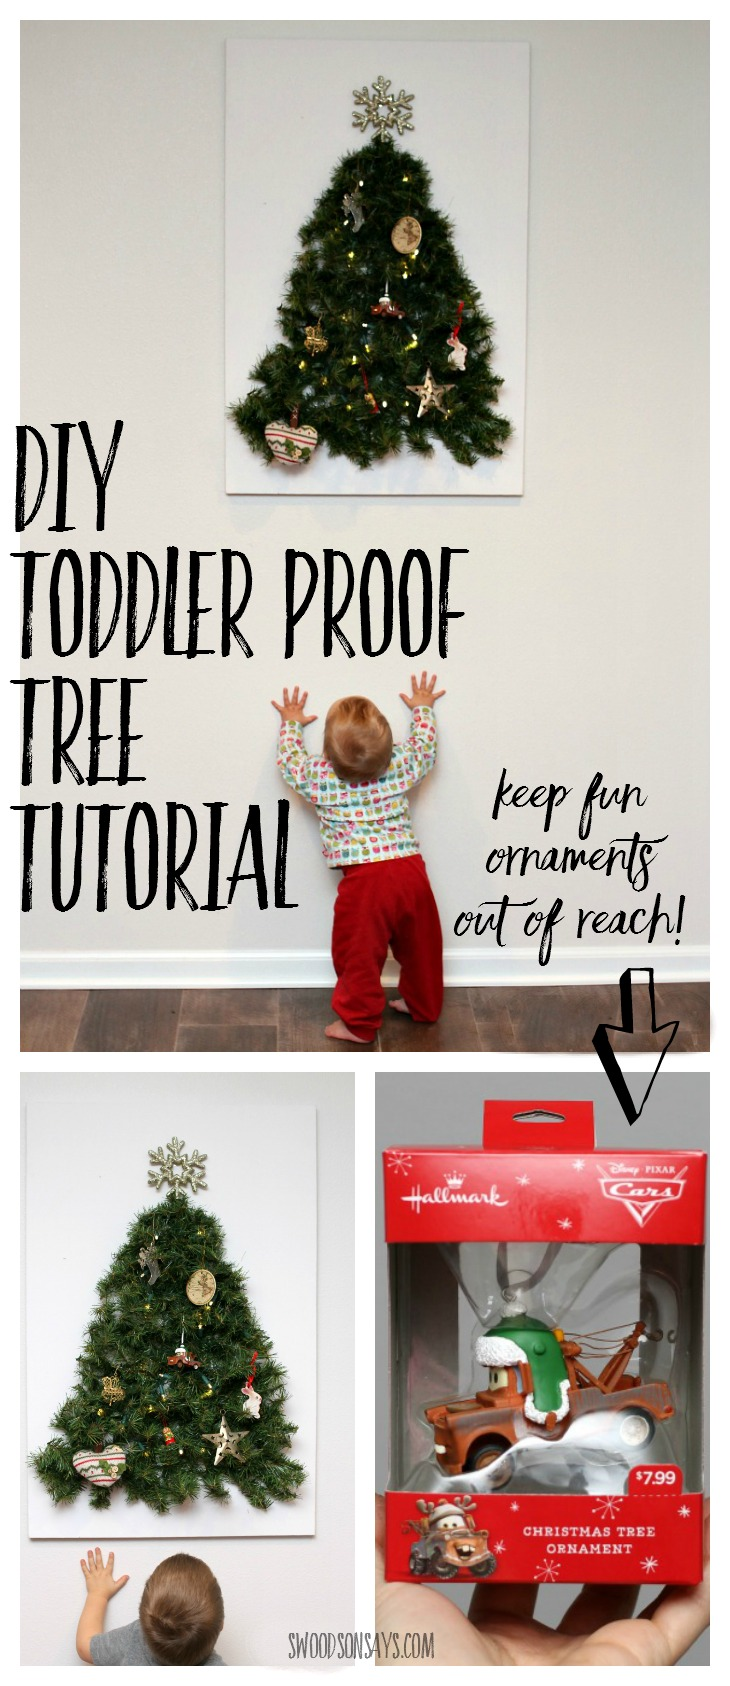 DIY Toddler Proof Tutorial - keep your fun ornaments as decoration instead of toys with this easy tutorial for a wall tree that is baby proofed! Swoodsonsays.com